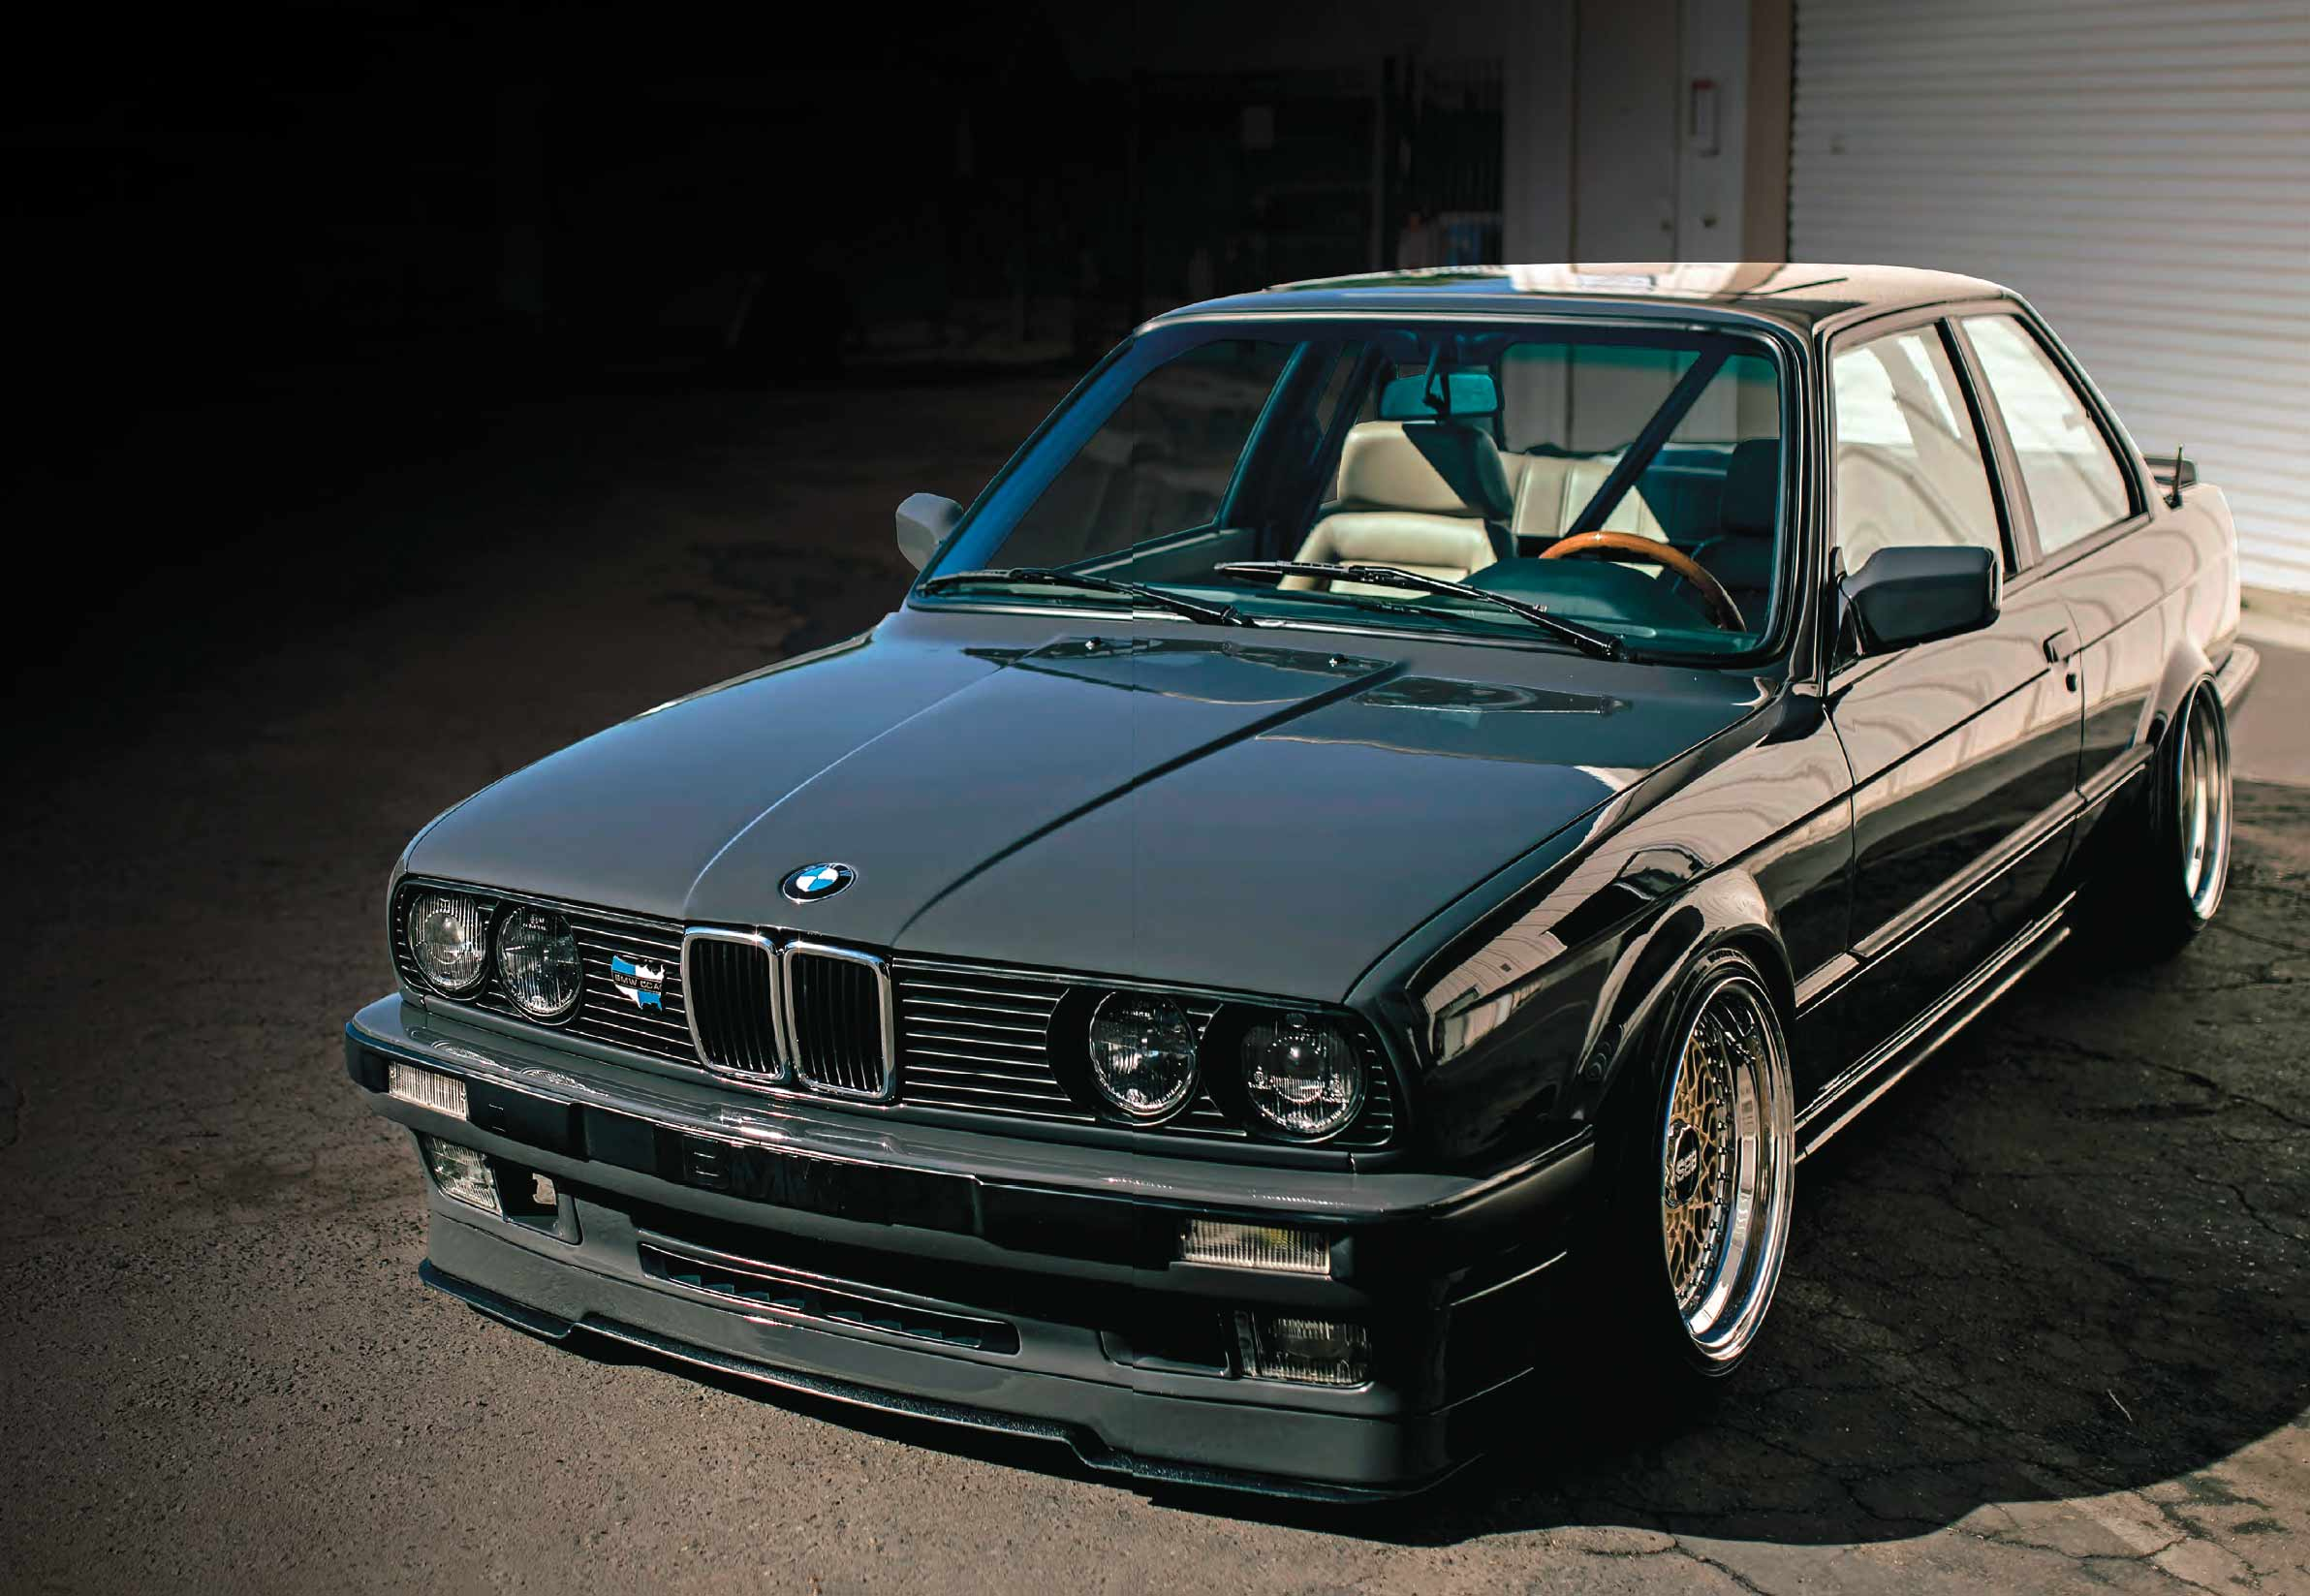 S50-swapped rebuilt with CP-Carrillo forged pistons BMW E30